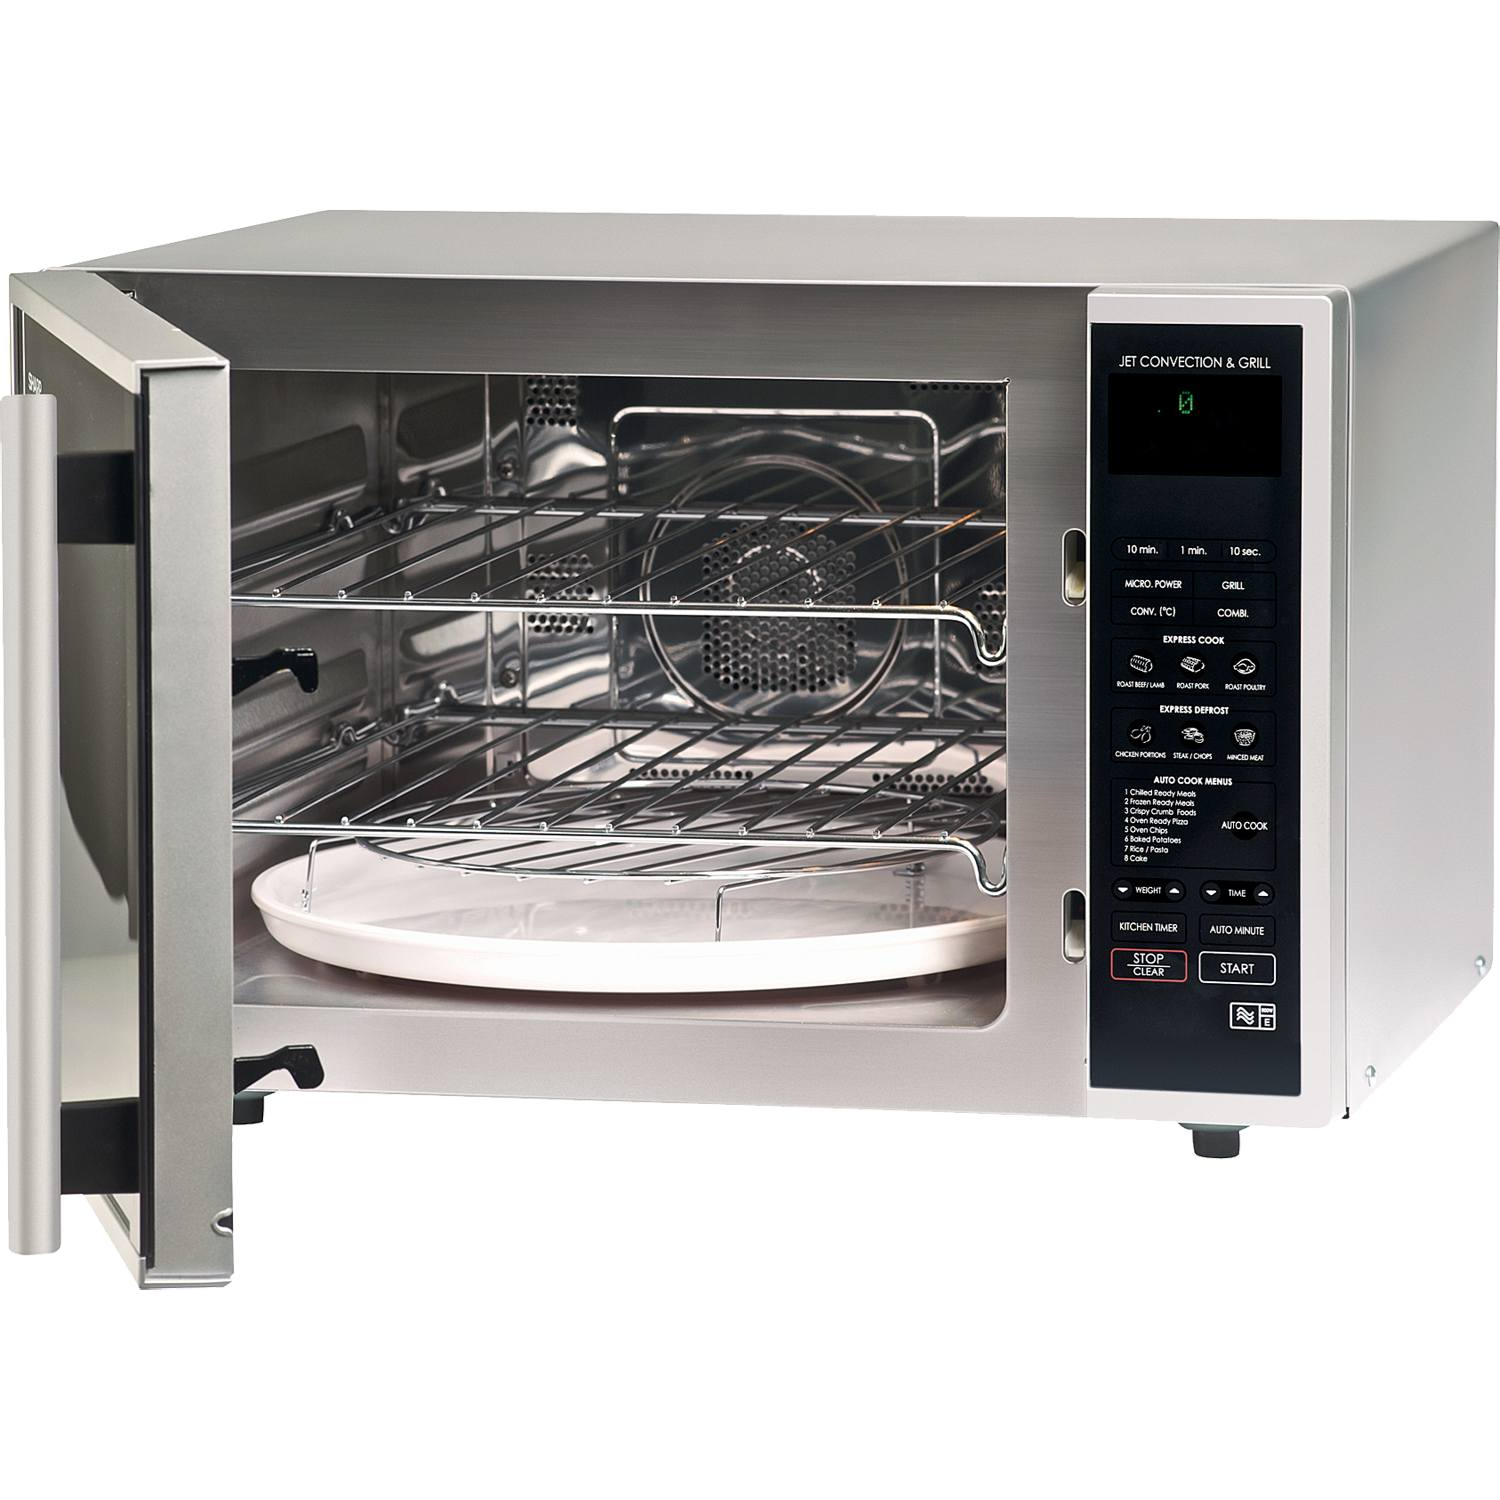 Black Combination Microwave Oven And Grill: Sharp R959SLMAA 40L 12 Programmes Combination Microwave